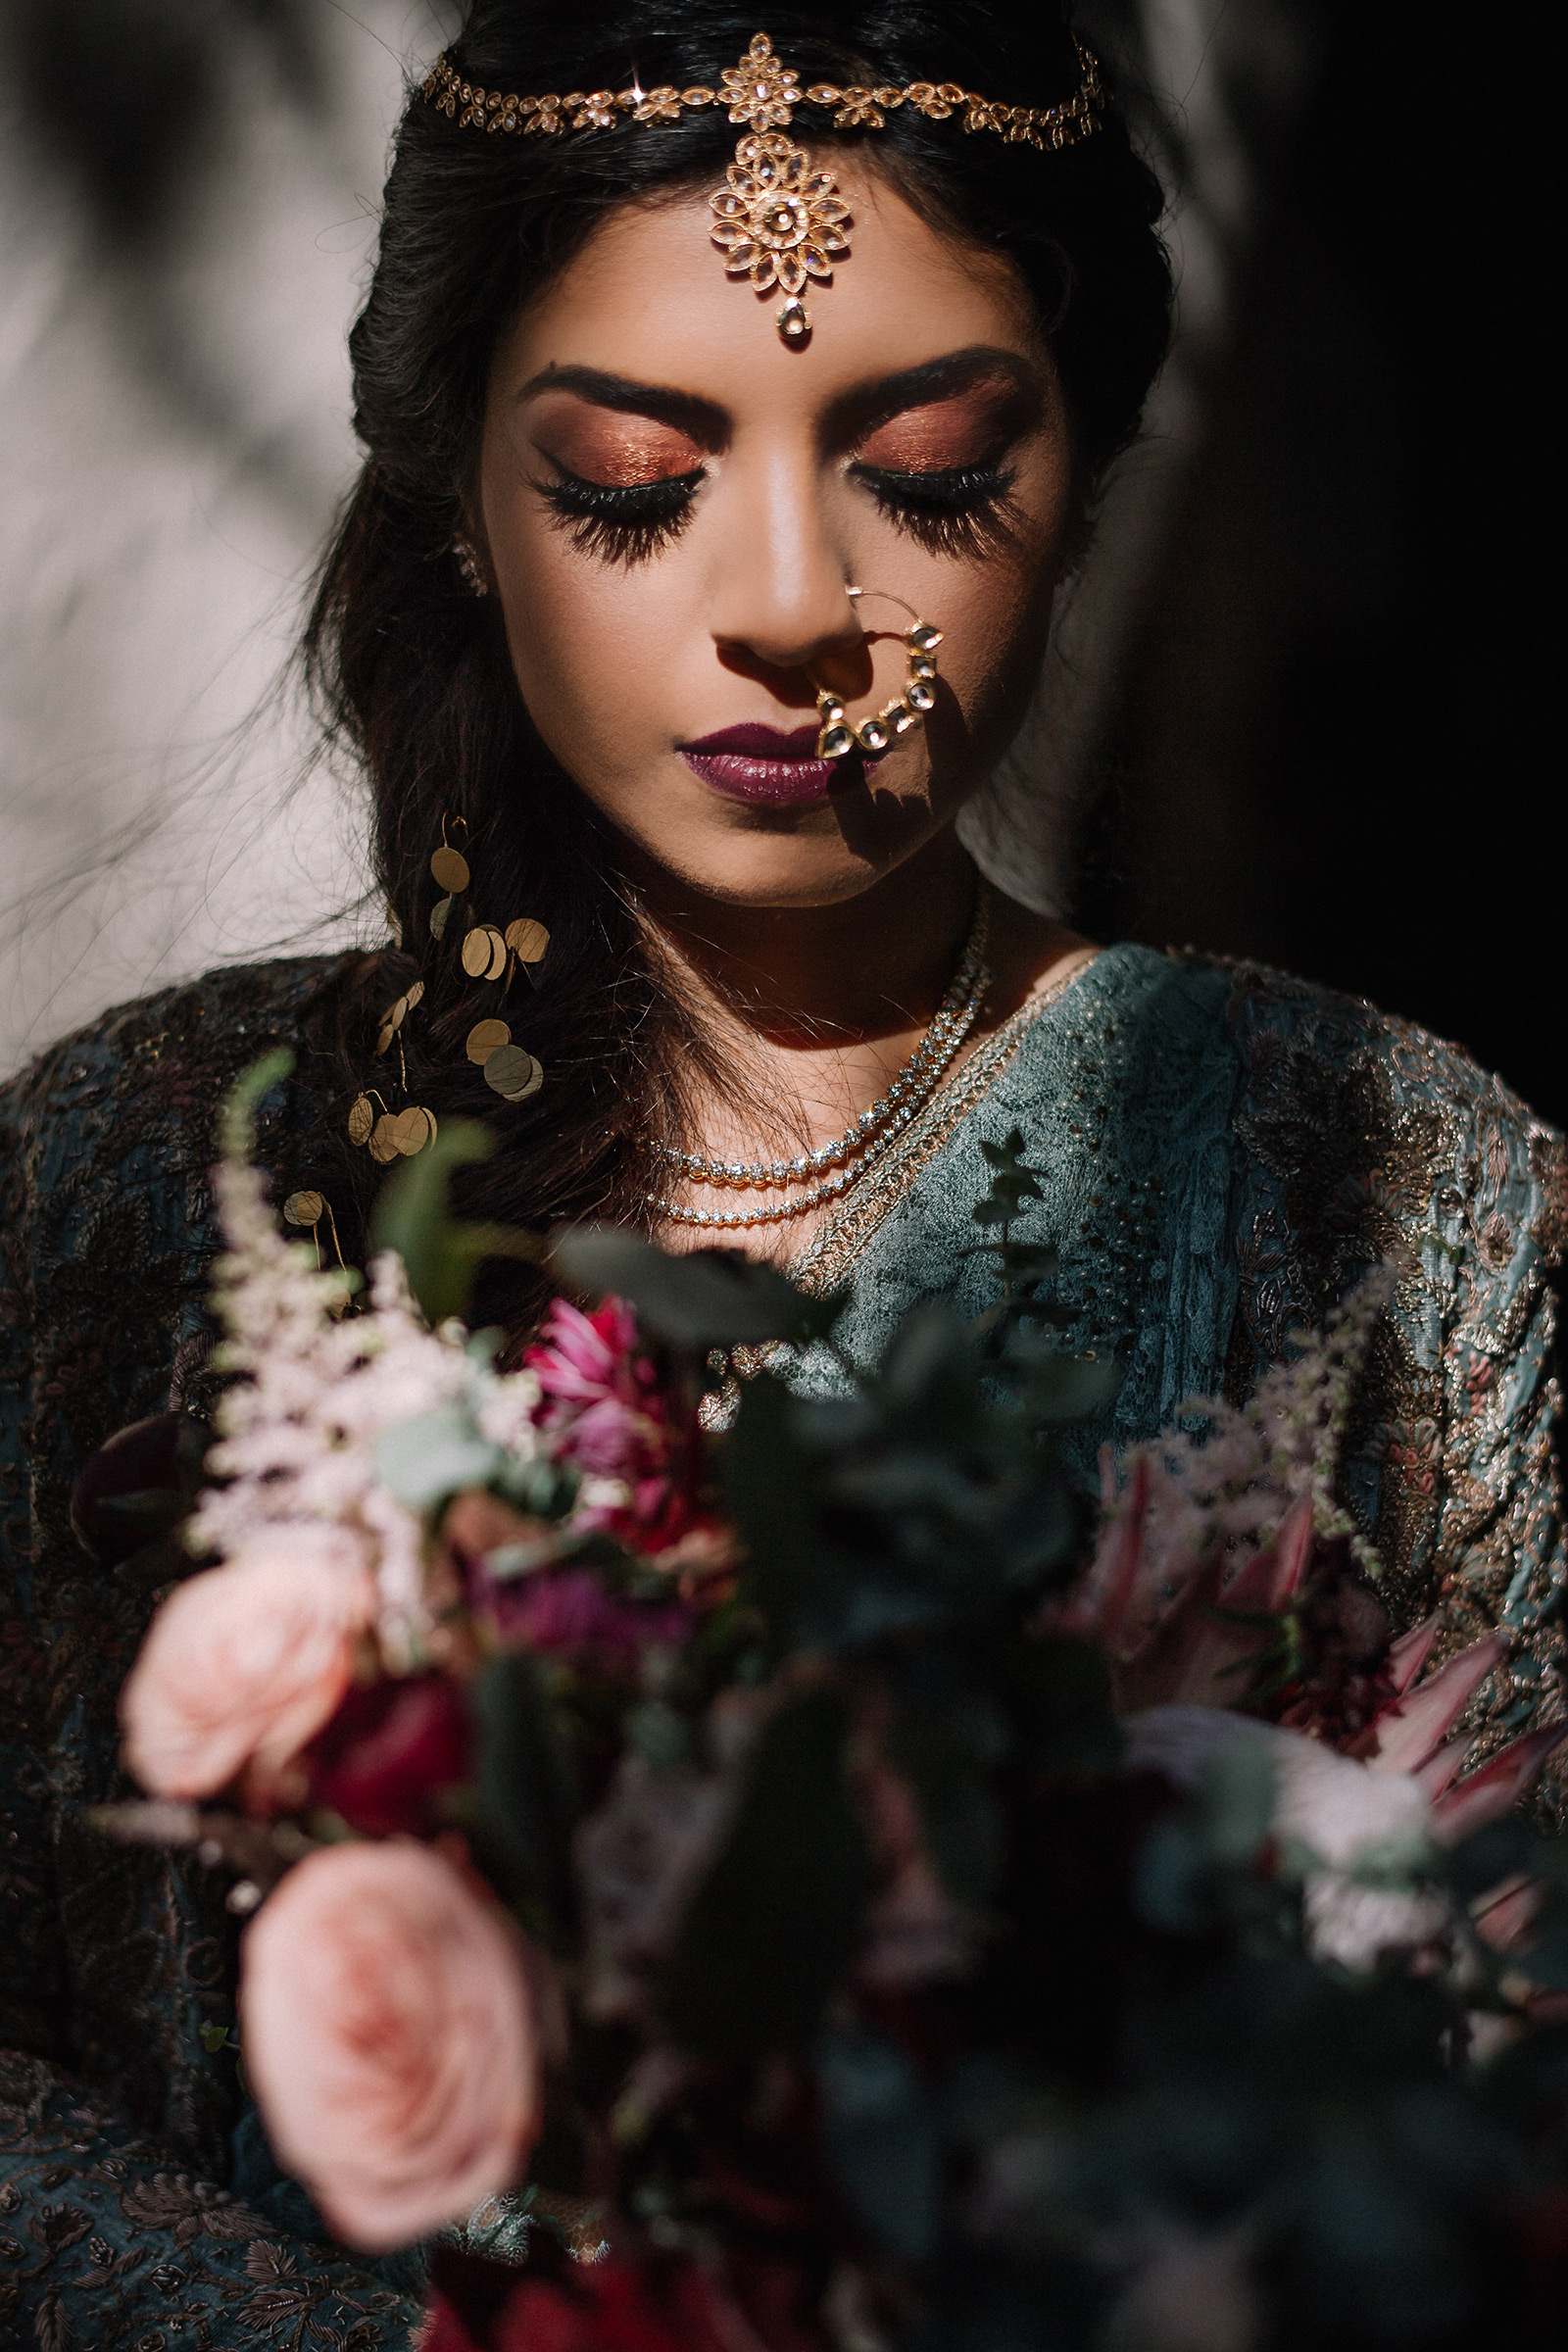 Stunning Indian bride portrait with downcast eyes and shadows - photo by Matei Horvath Photography